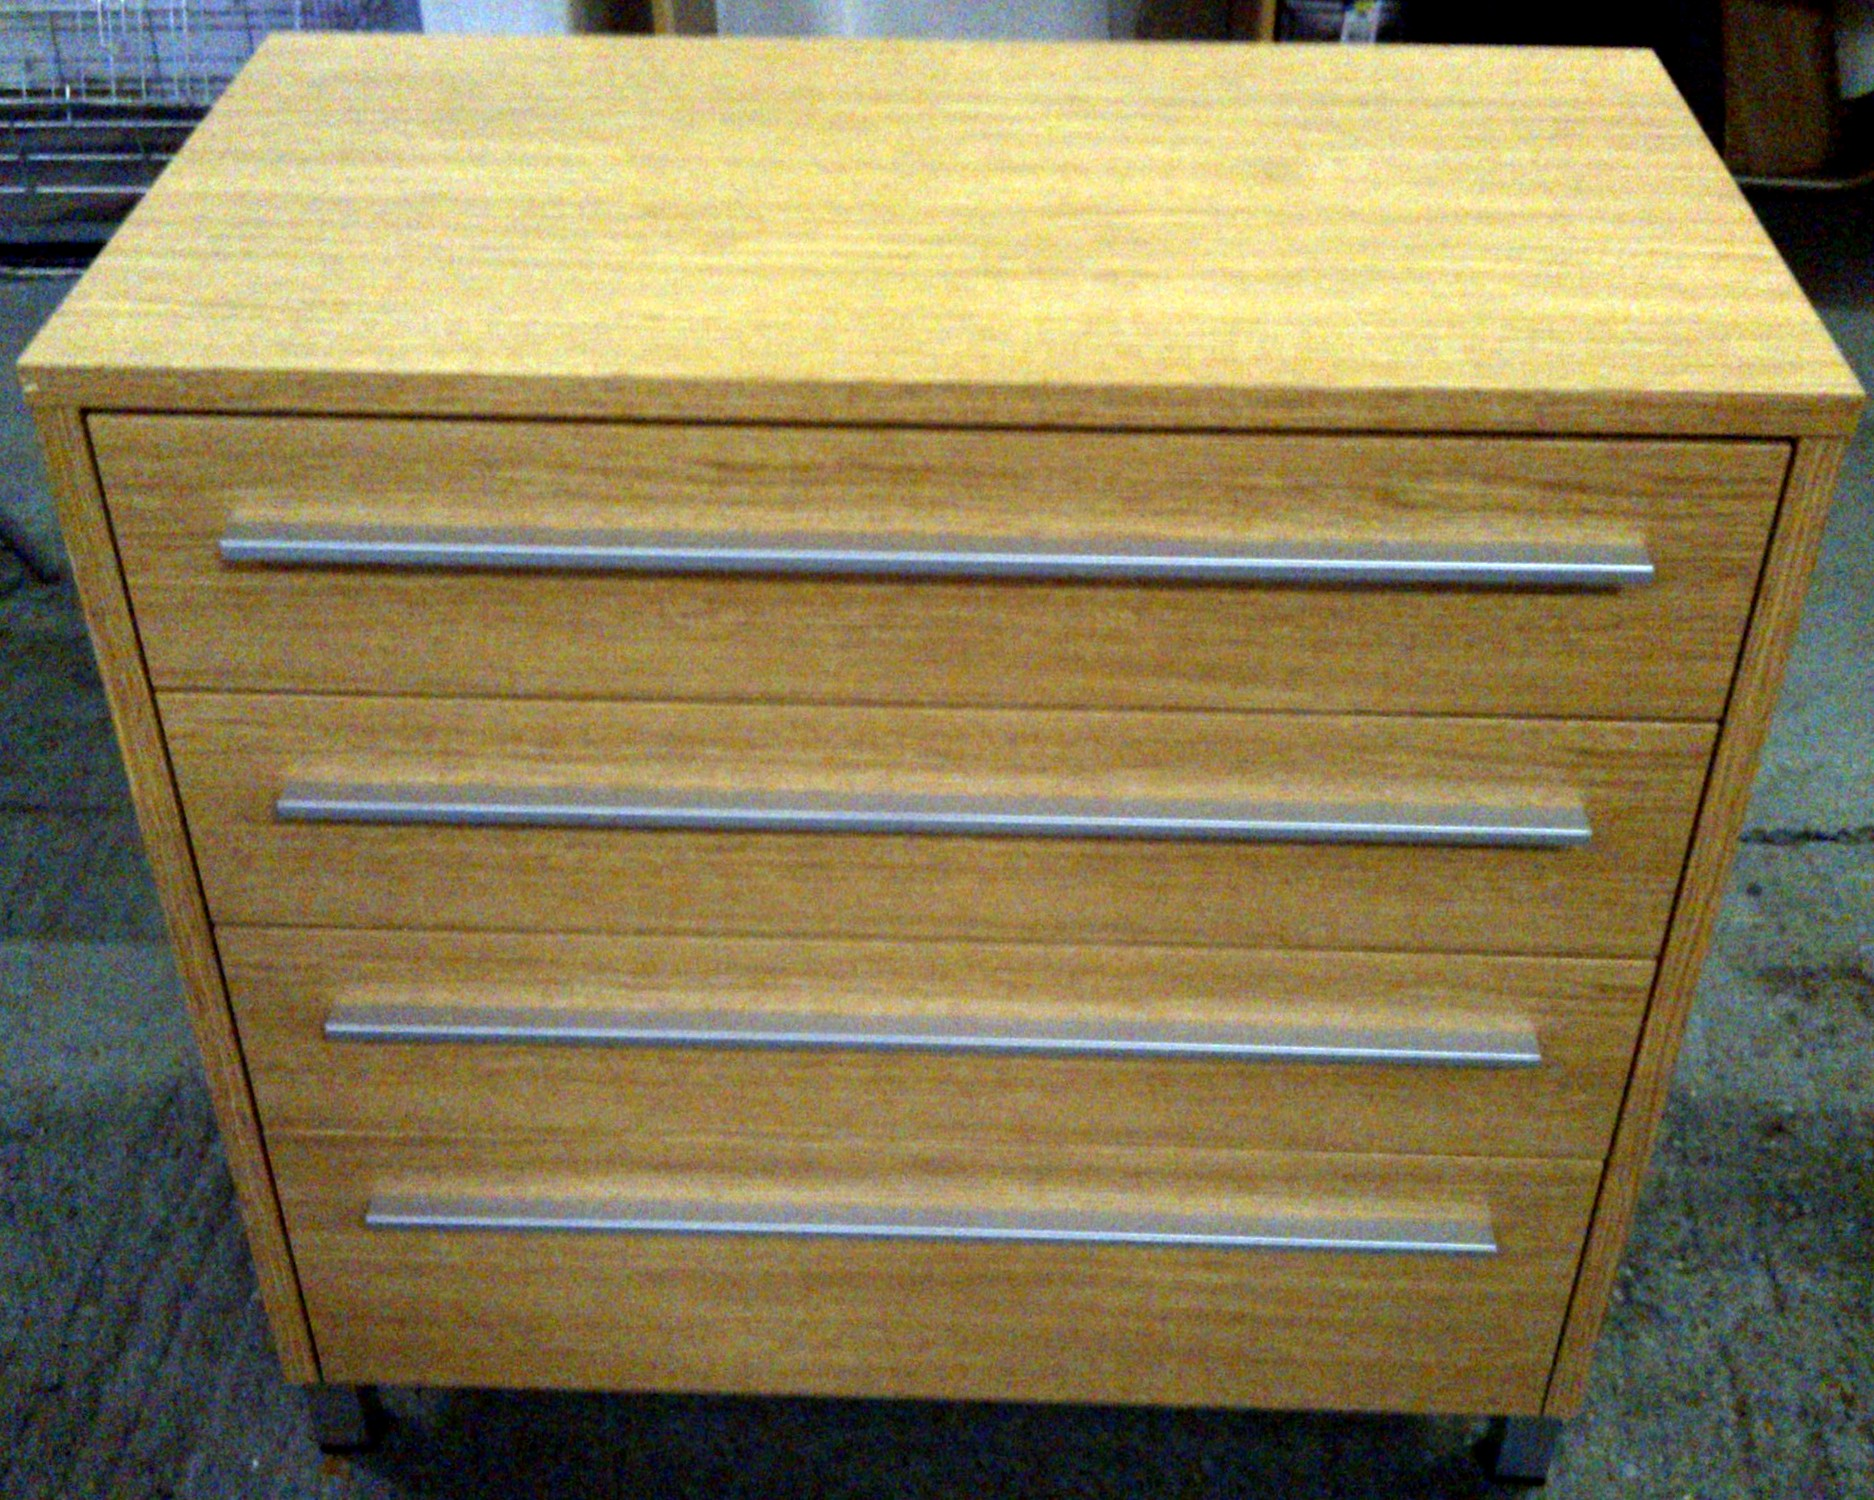 #A99122  Drawer Bedroom Furniture. Chest Of 4 Drawers. Solid Wood. Looks Great with 1874x1500 px of Best Chest Of Drawers Solid Wood 15001874 image @ avoidforclosure.info